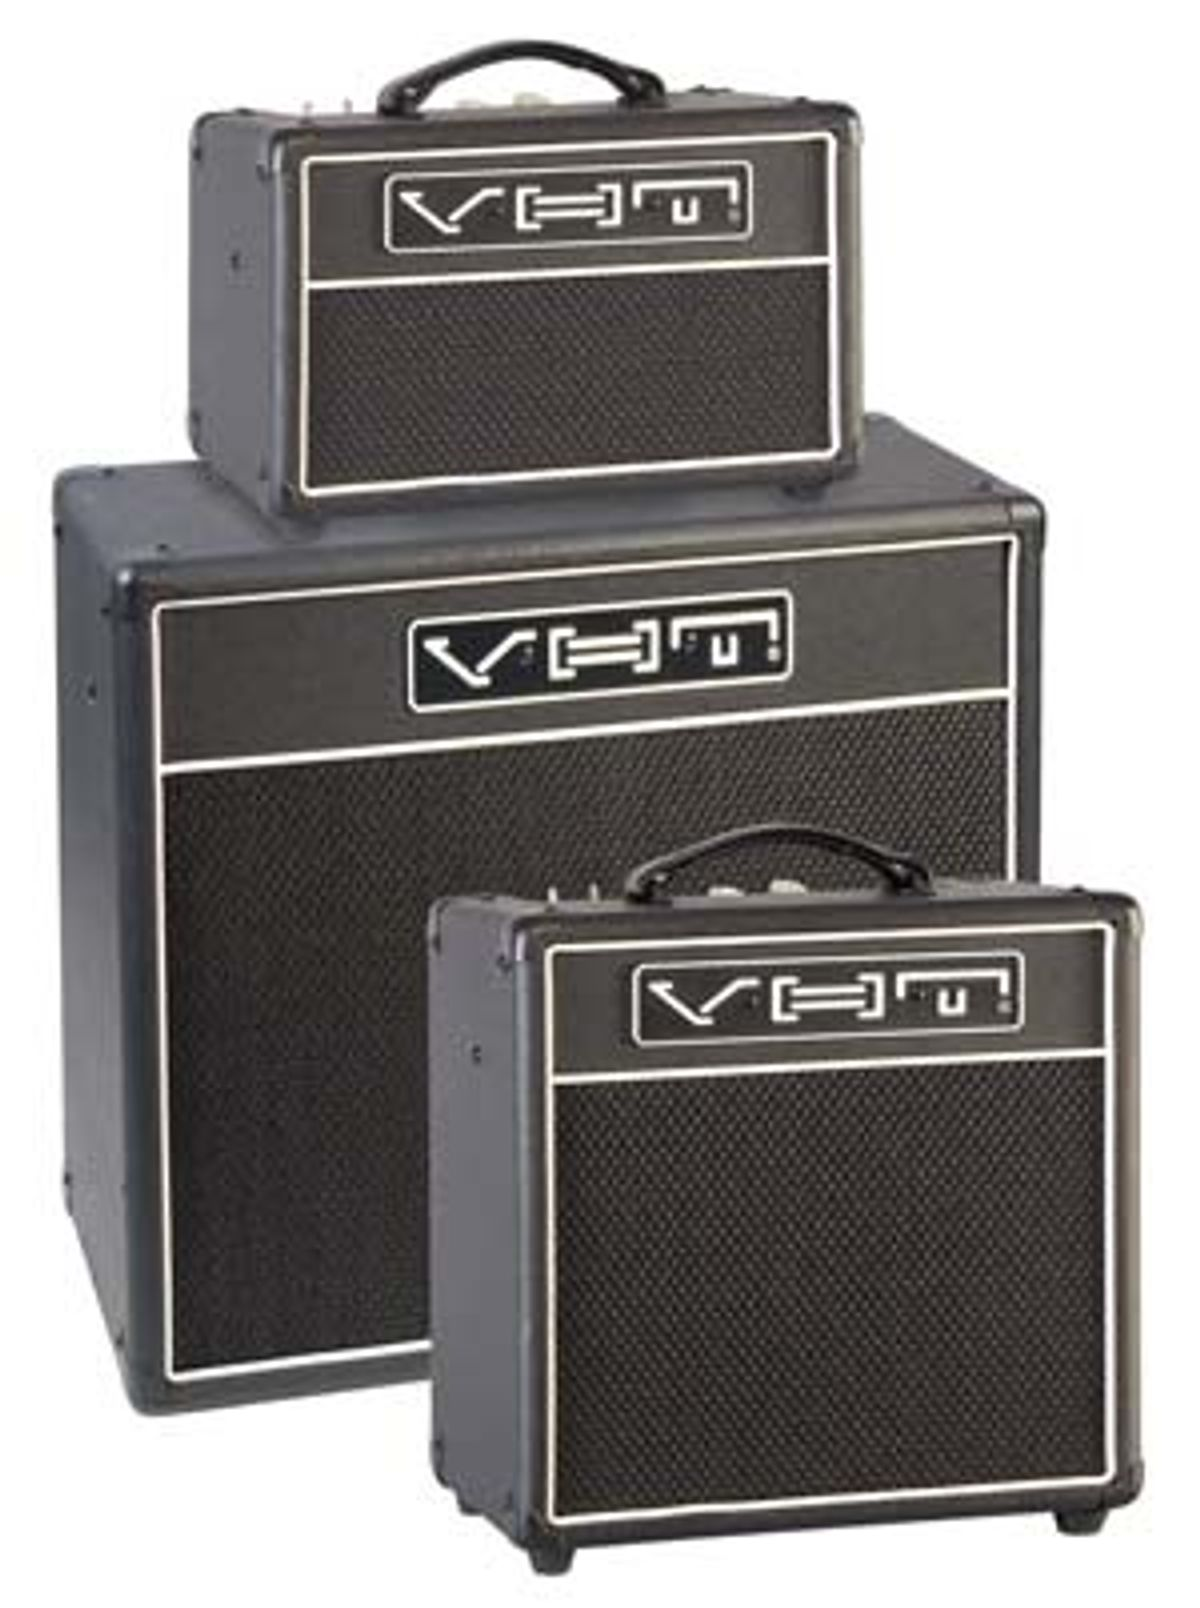 VHT Announces the Special 6 Handwired Amp